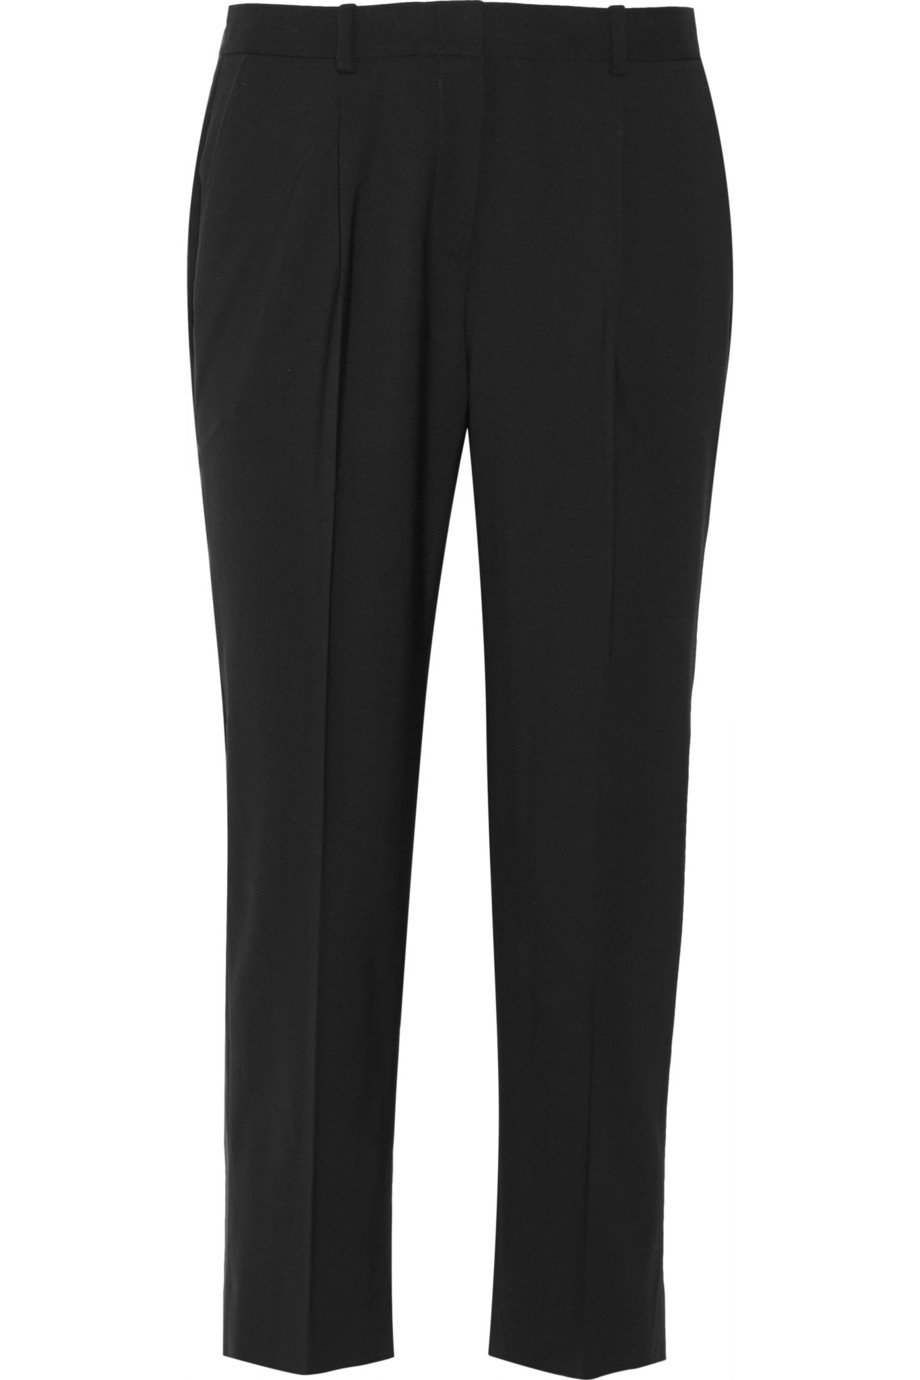 Theory Jorah cropped stretch-wool straight-leg pants – 55% at THE OUTNET.COM